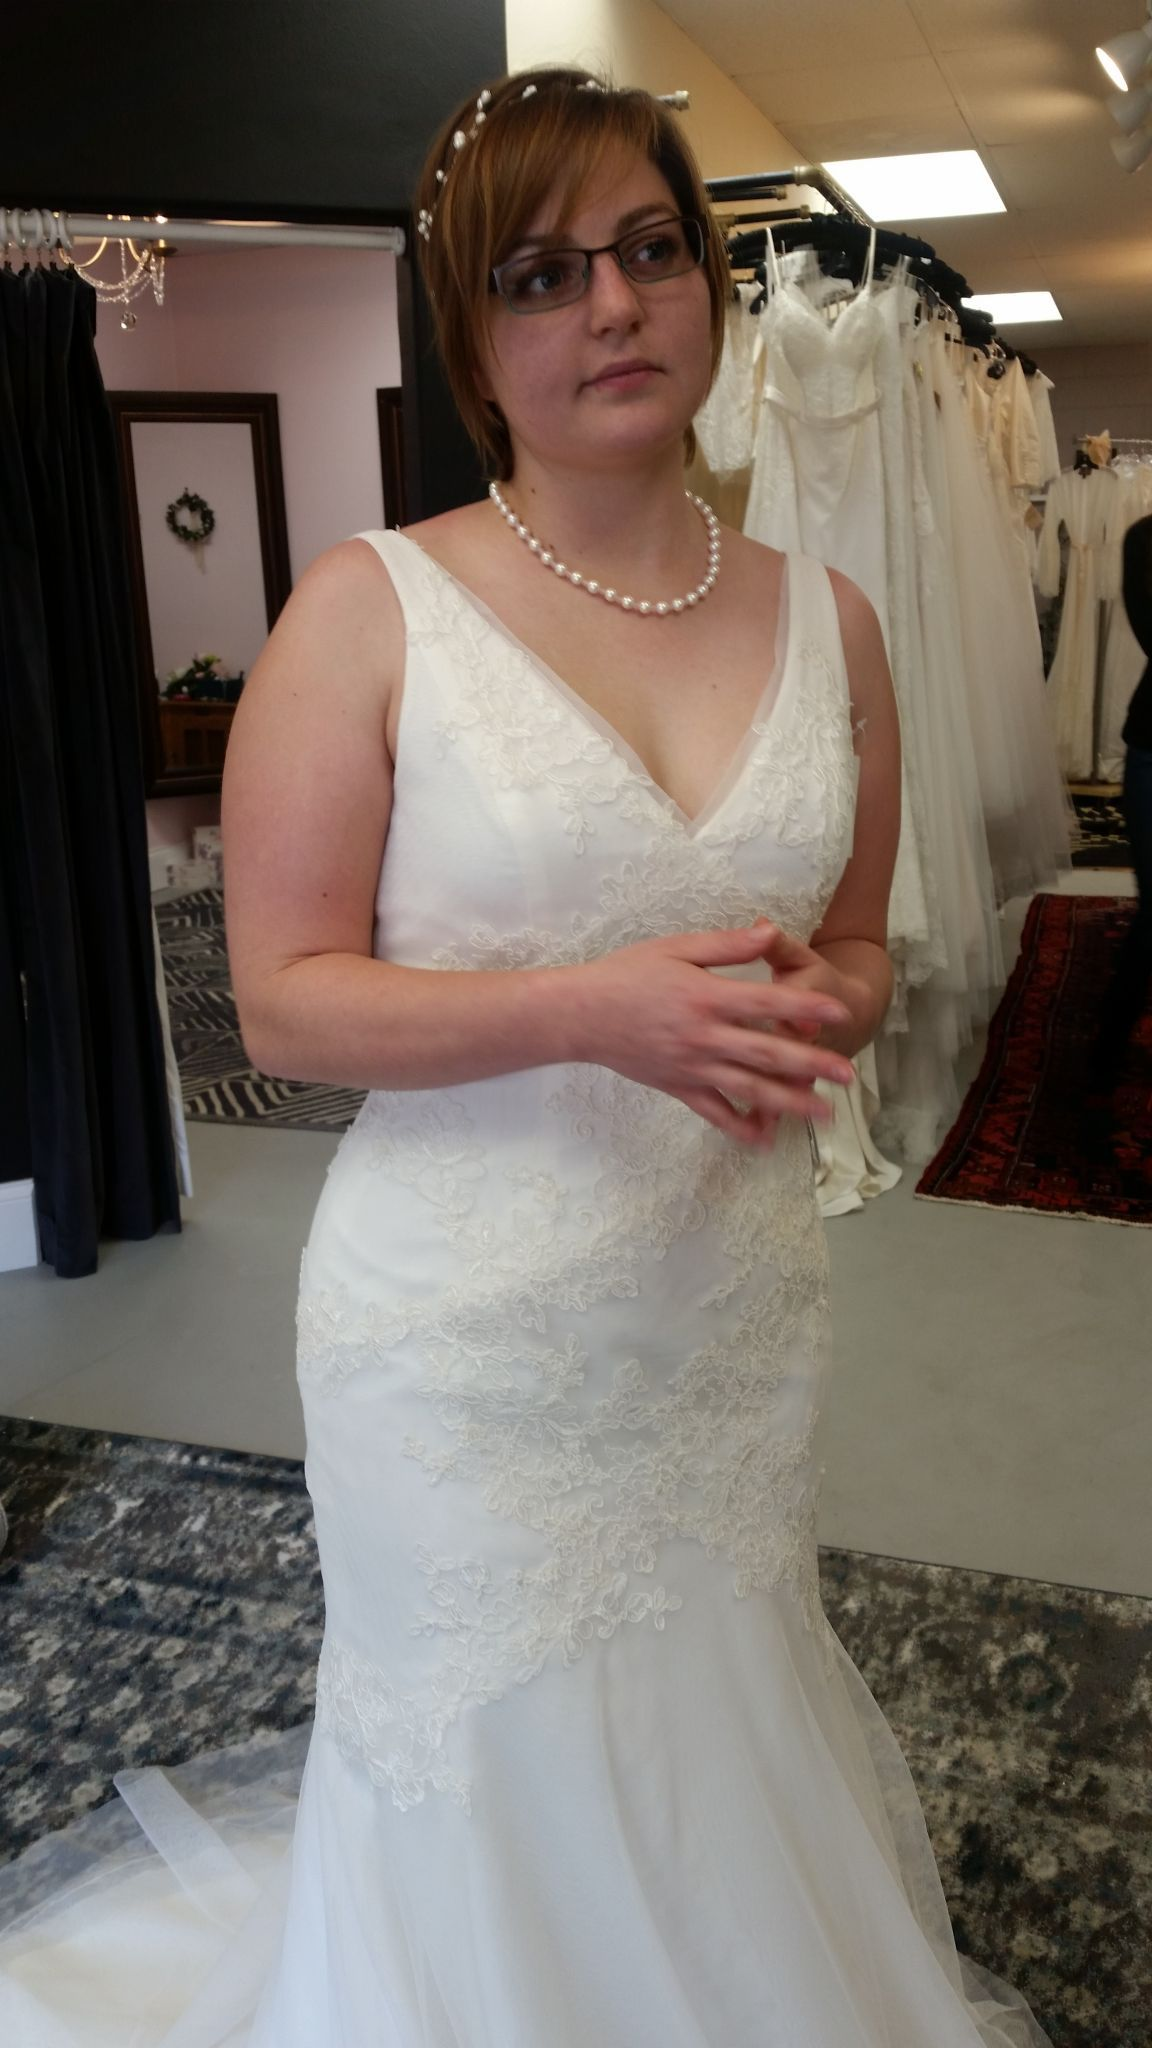 fcb554989933 Vera Wang White VW351021, $550 Size: 10 | New (Un-Altered) Wedding ...